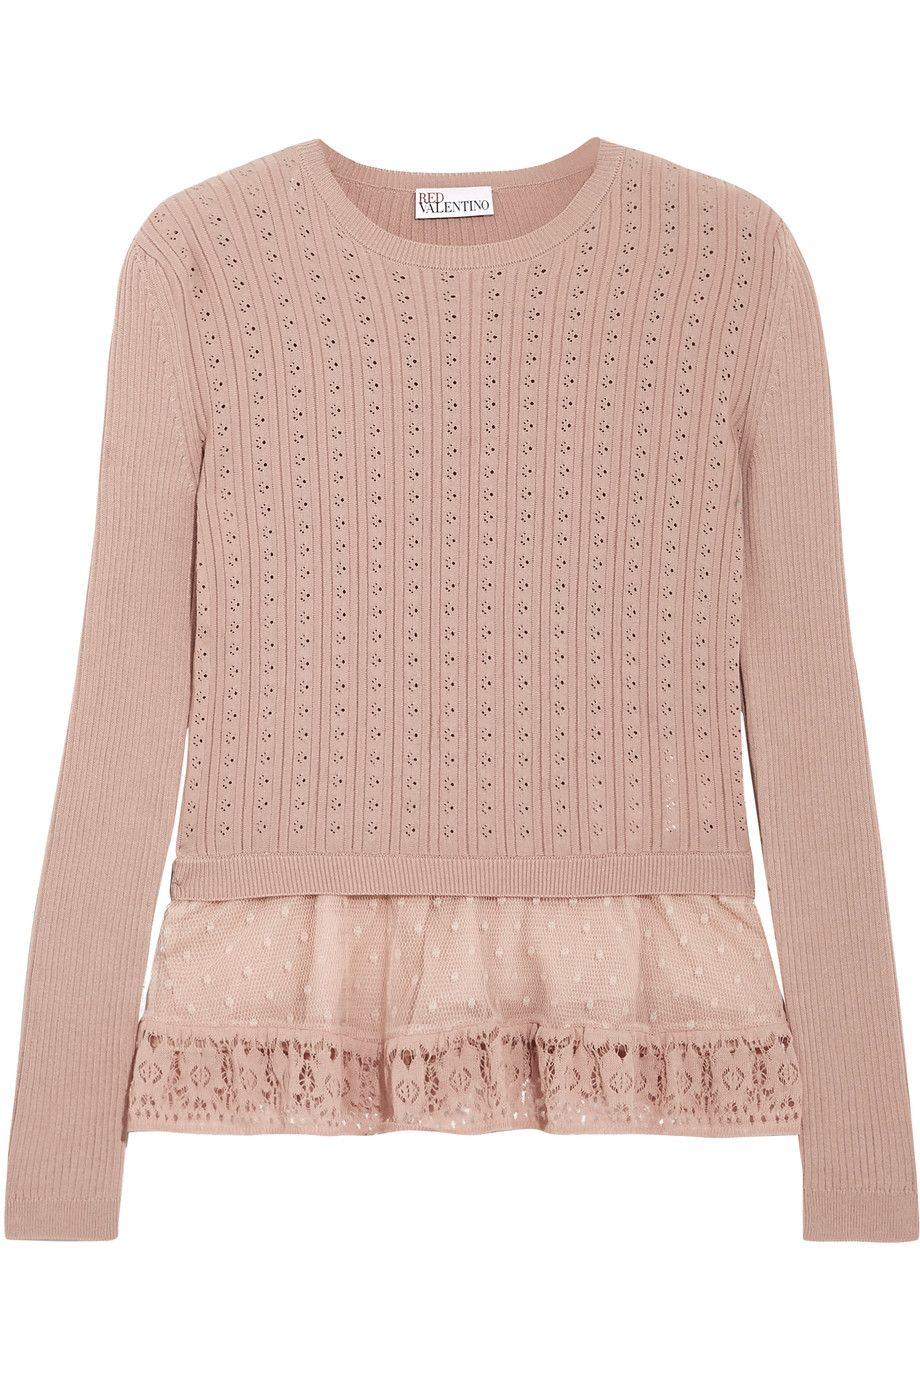 Shop on-sale REDValentino Point d'esprit-trimmed ribbed pointelle ...